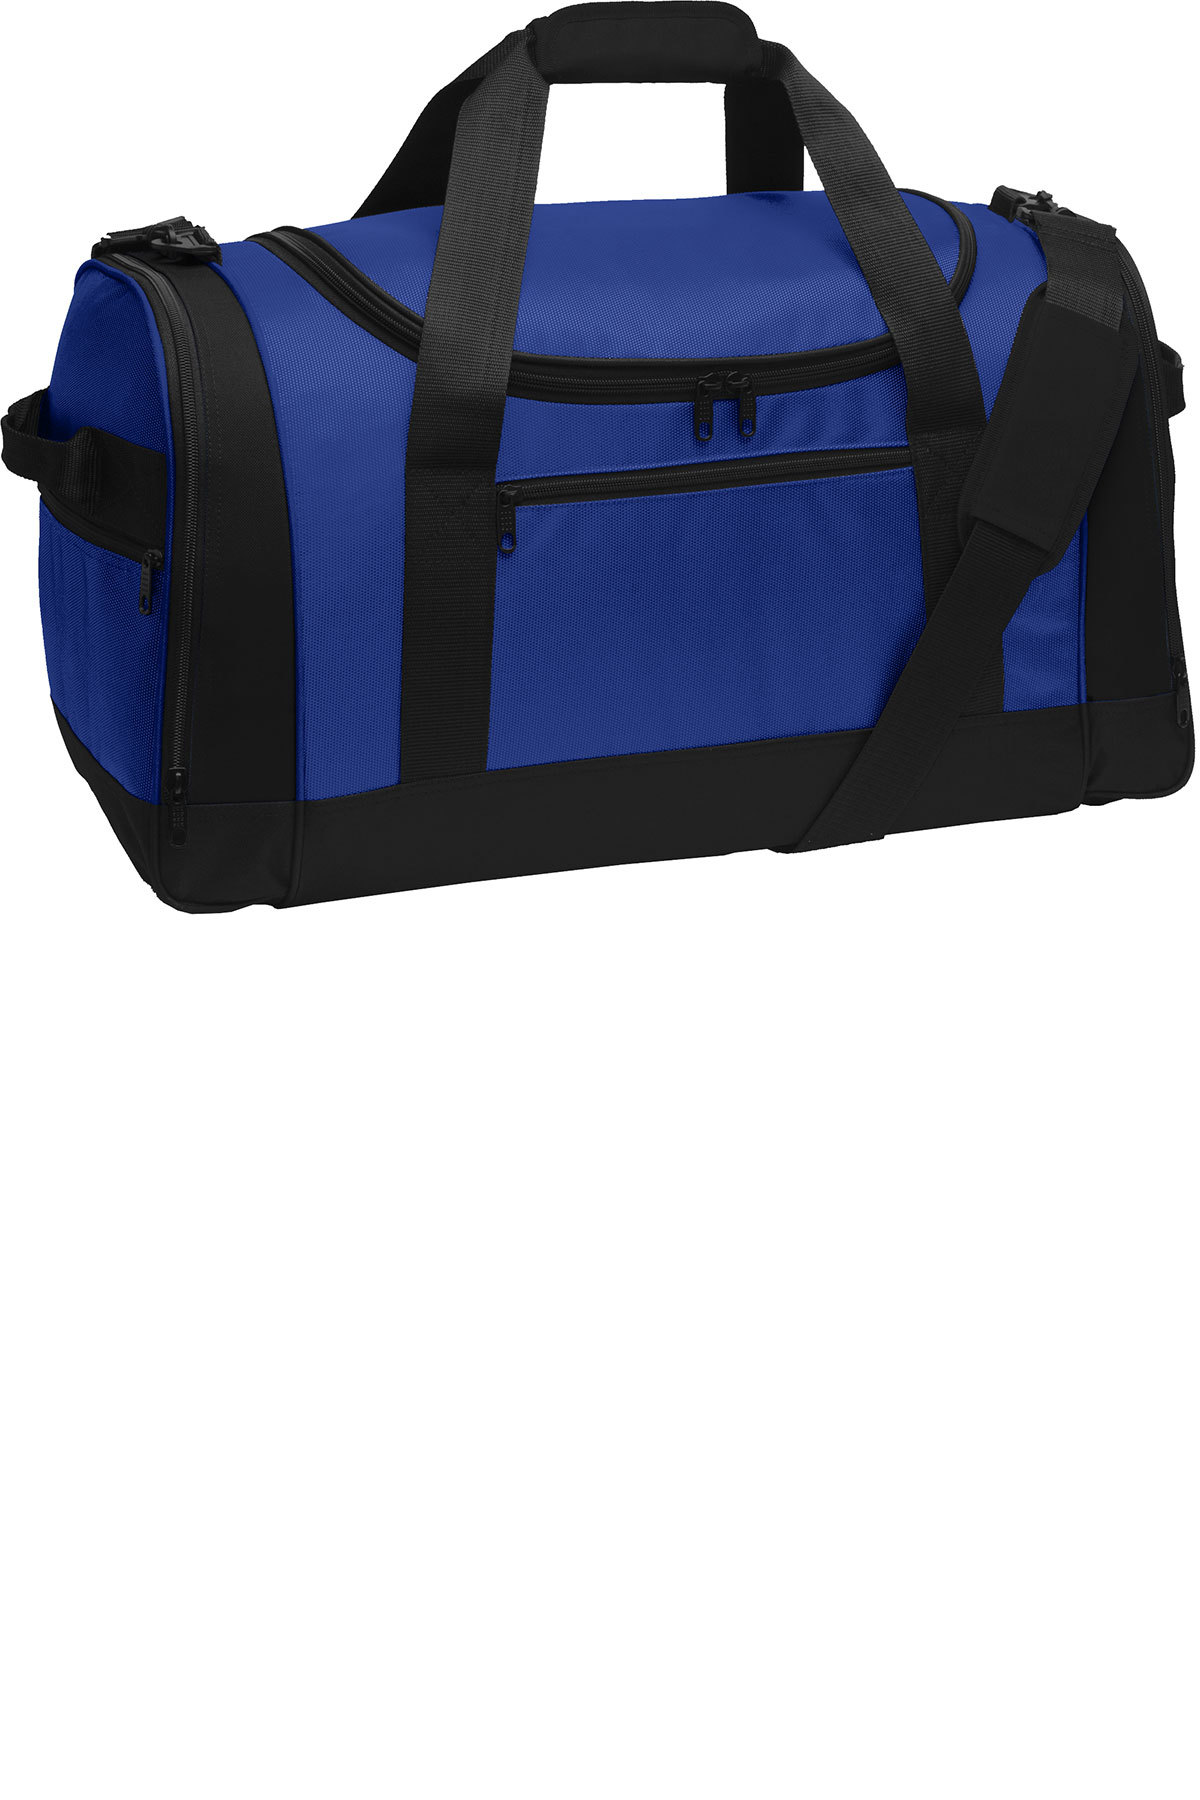 fdc8d296bb Home · Bags · Duffels  Port Authority® Voyager Sports Duffel.  6219 TwilightBlue-1-BG800TwilightBlueFlatFront.jpg